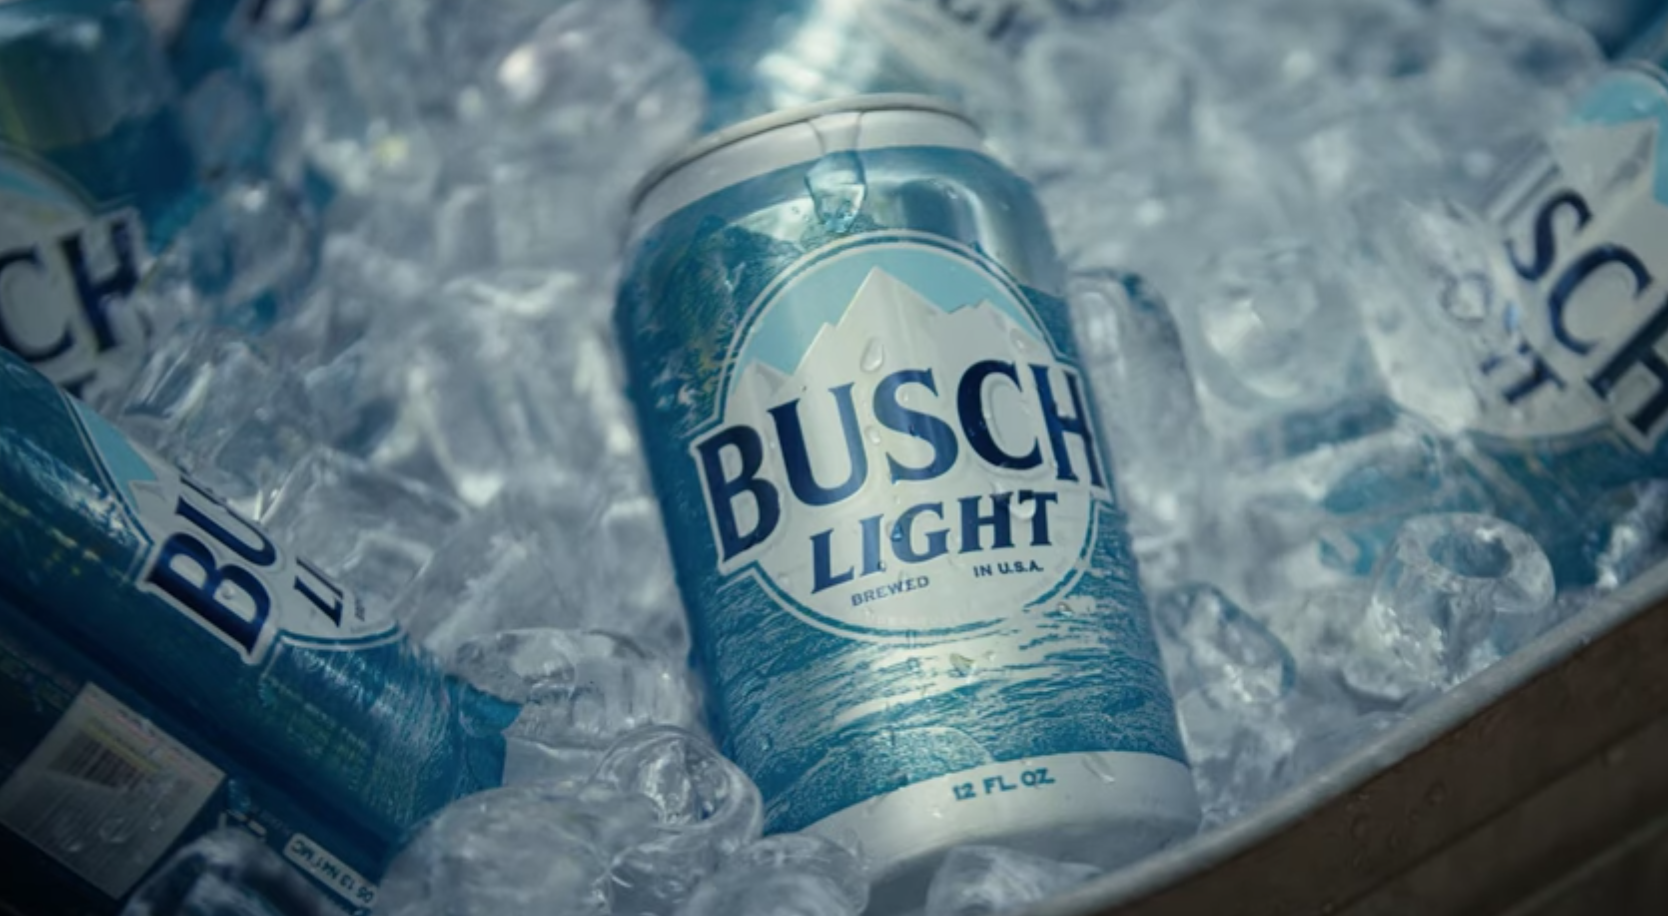 busch-pop-up